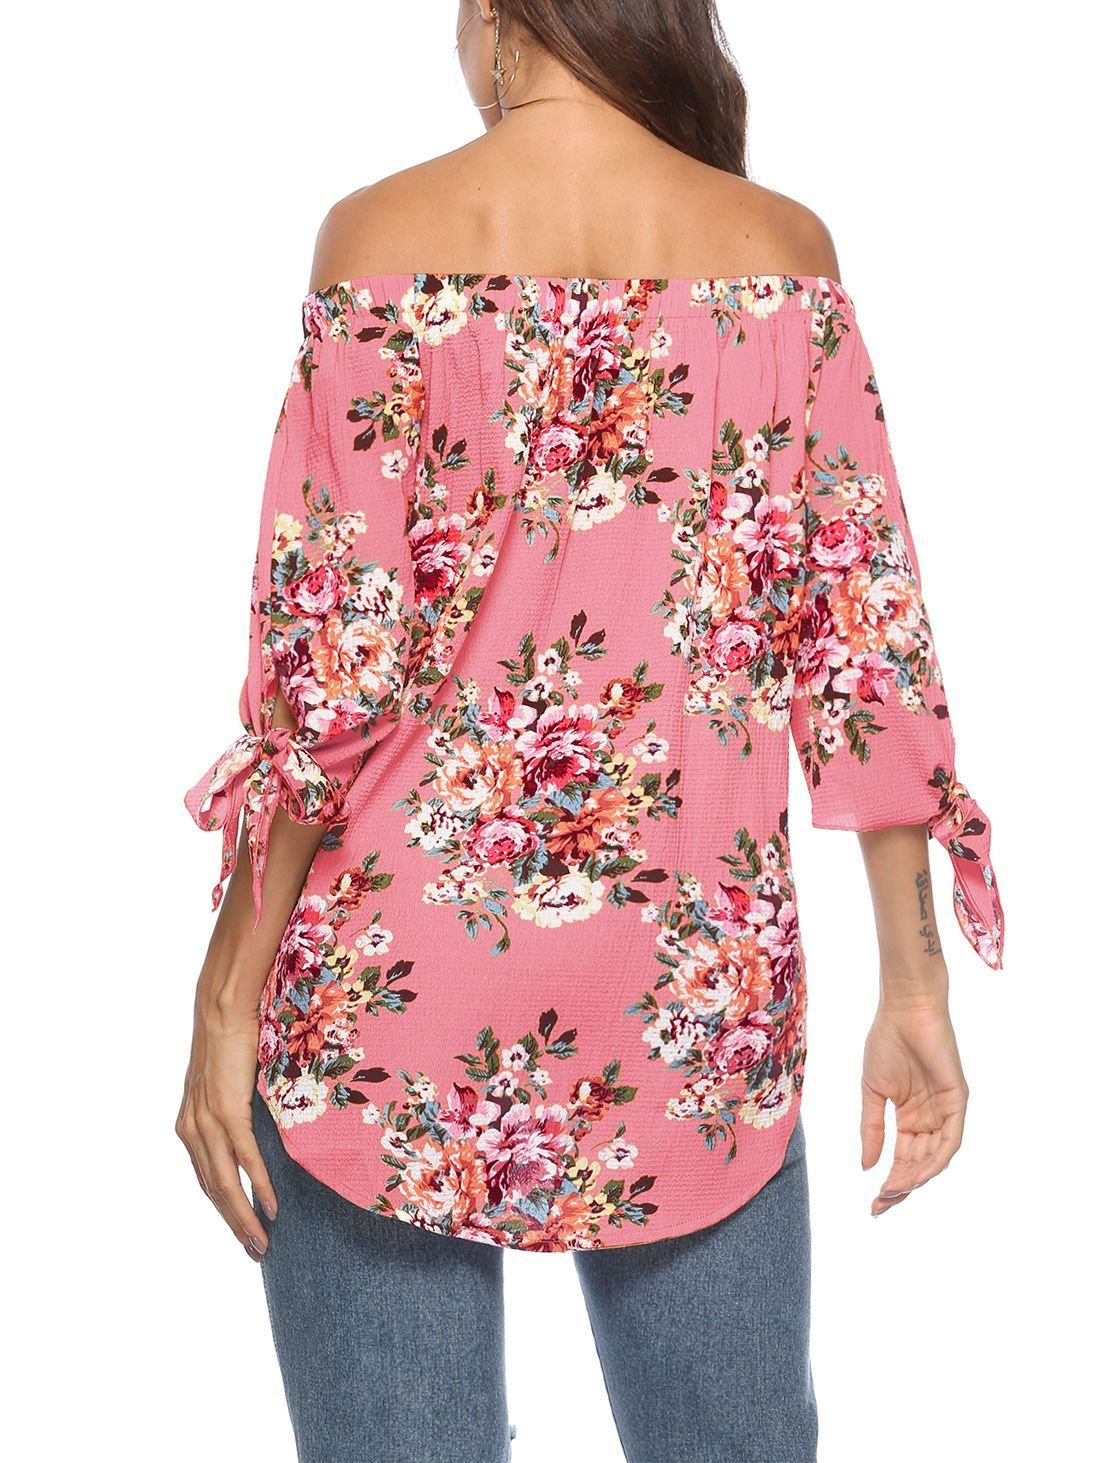 Off-Shoulder Chiffon Top with Tied ¾ Sleeves